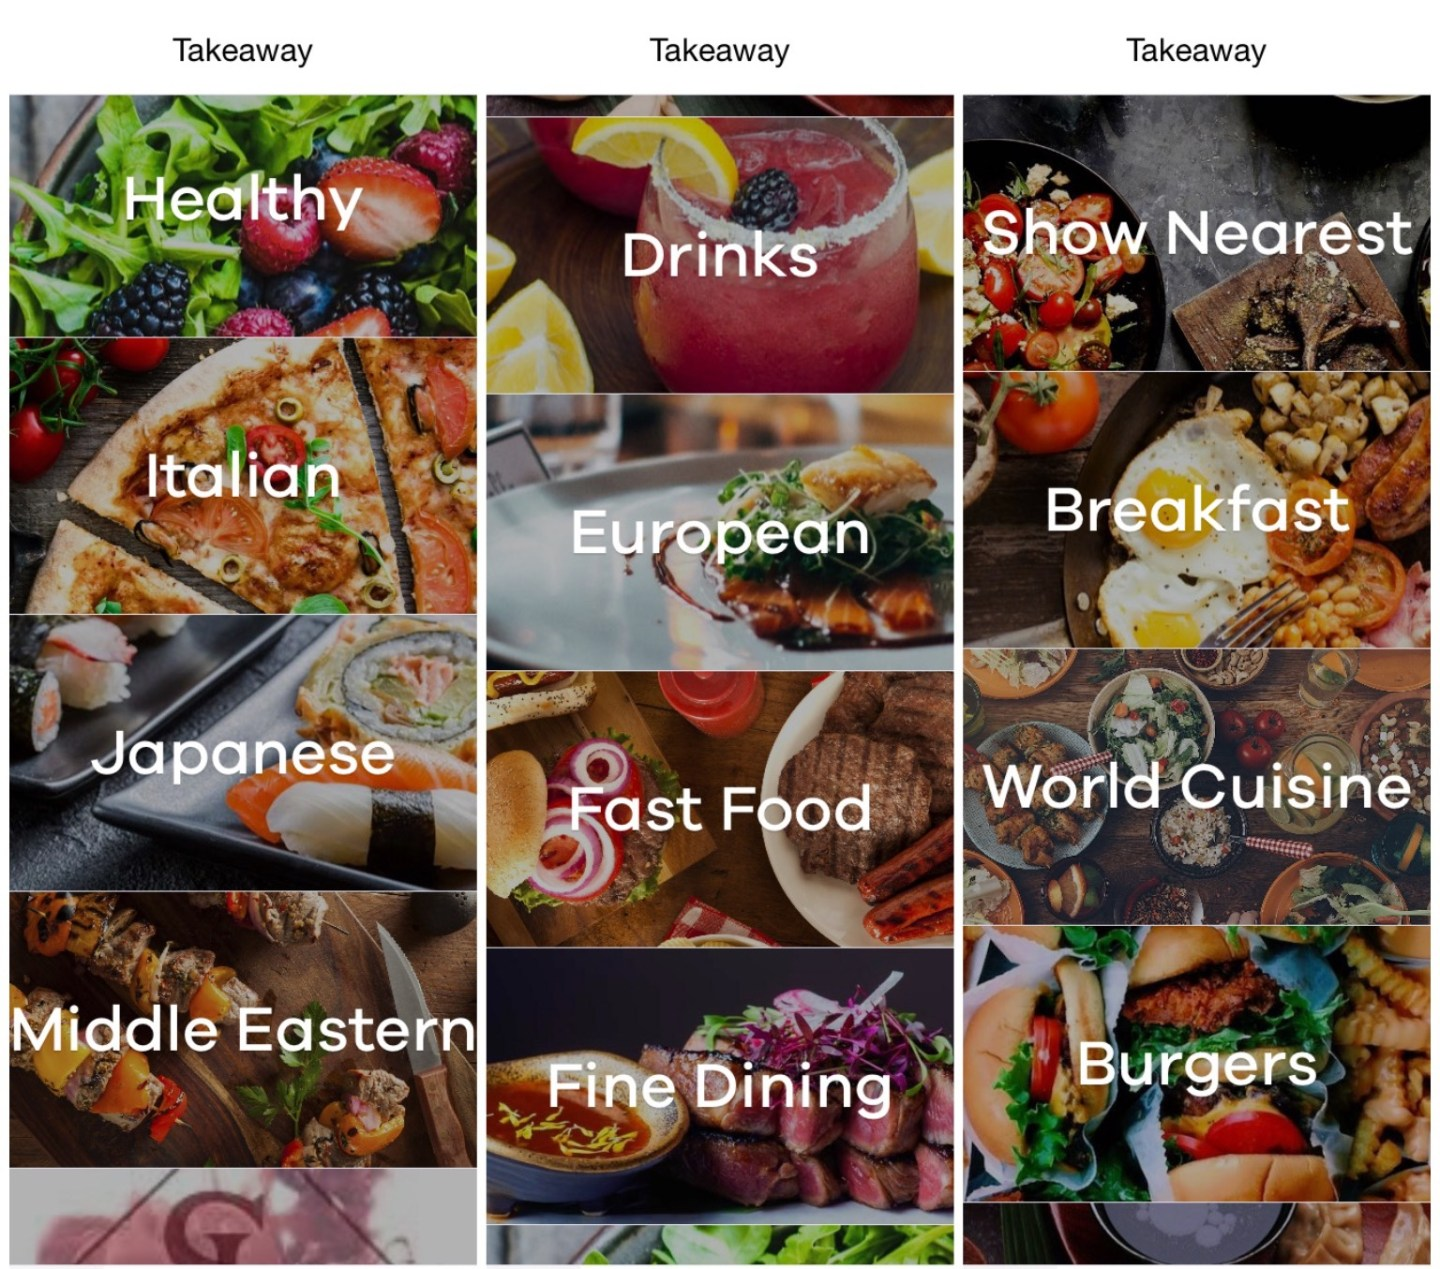 BringIt Food Delivery App Review - Pretty Big Butterflies